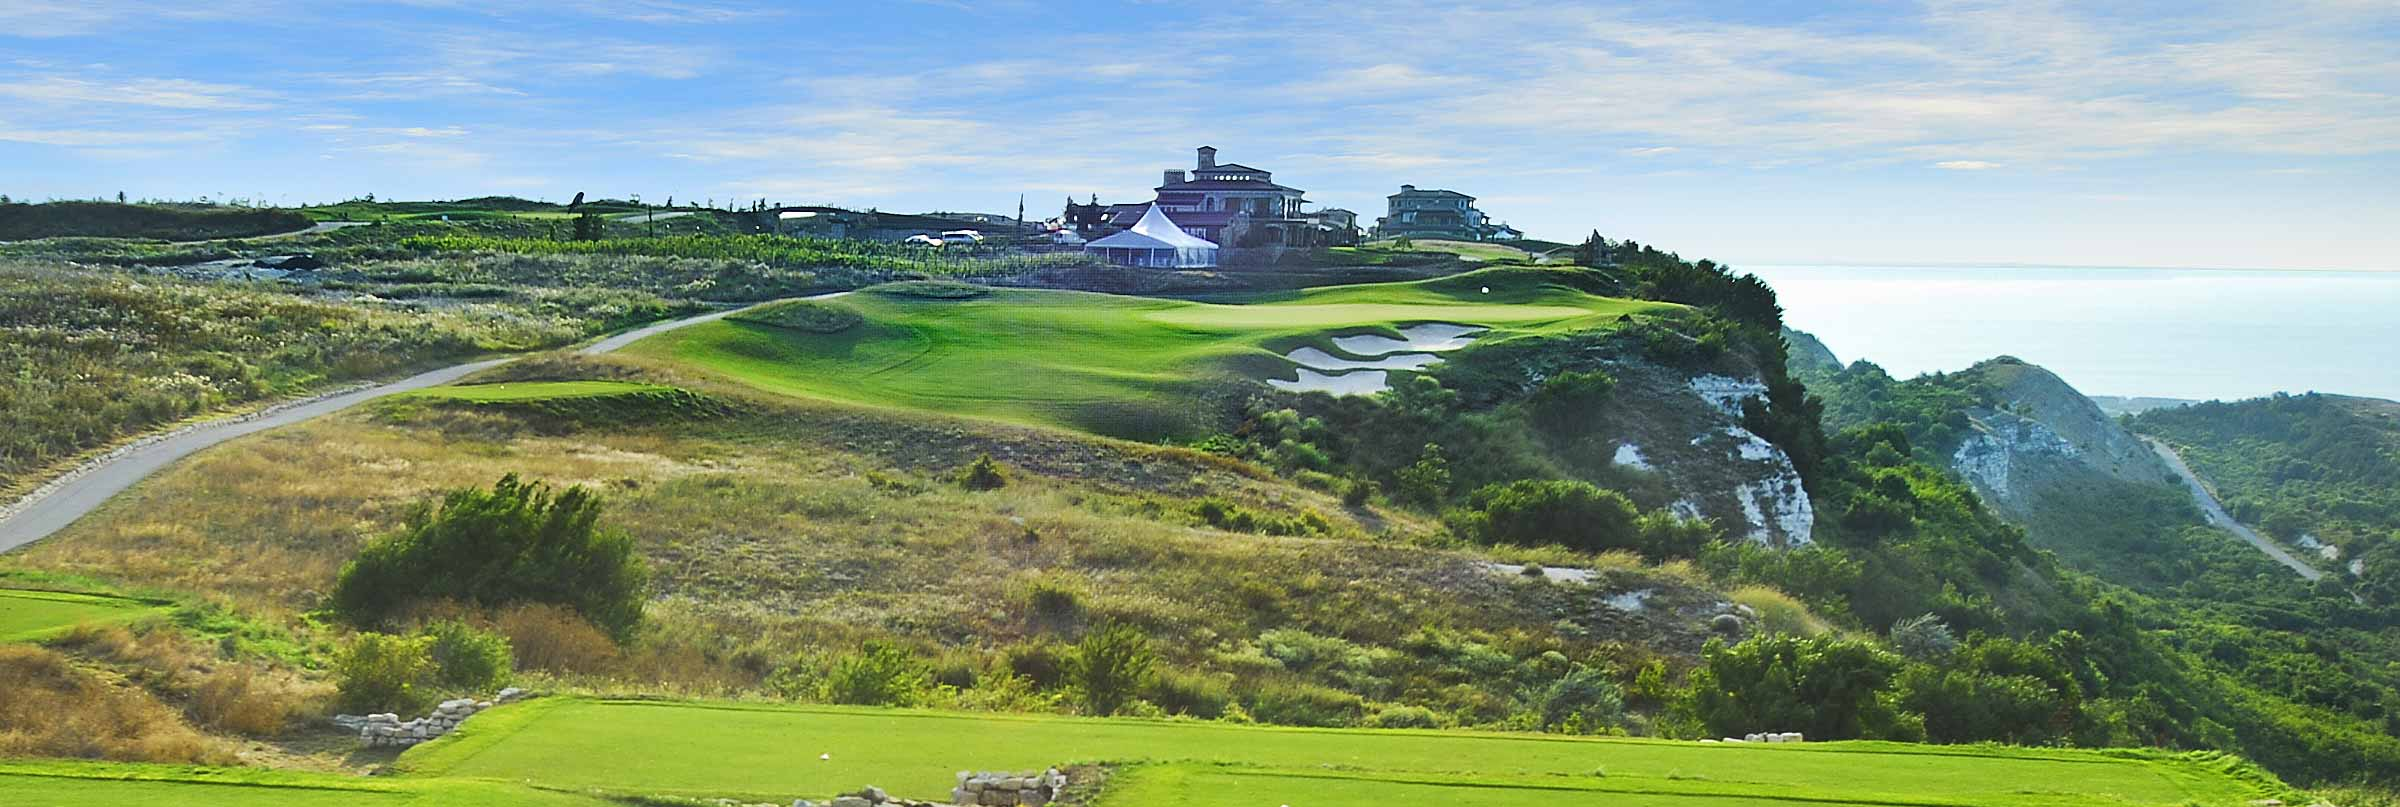 BlackSeaRama Golf & Villas 2019 - 7 nights, 5 green fees